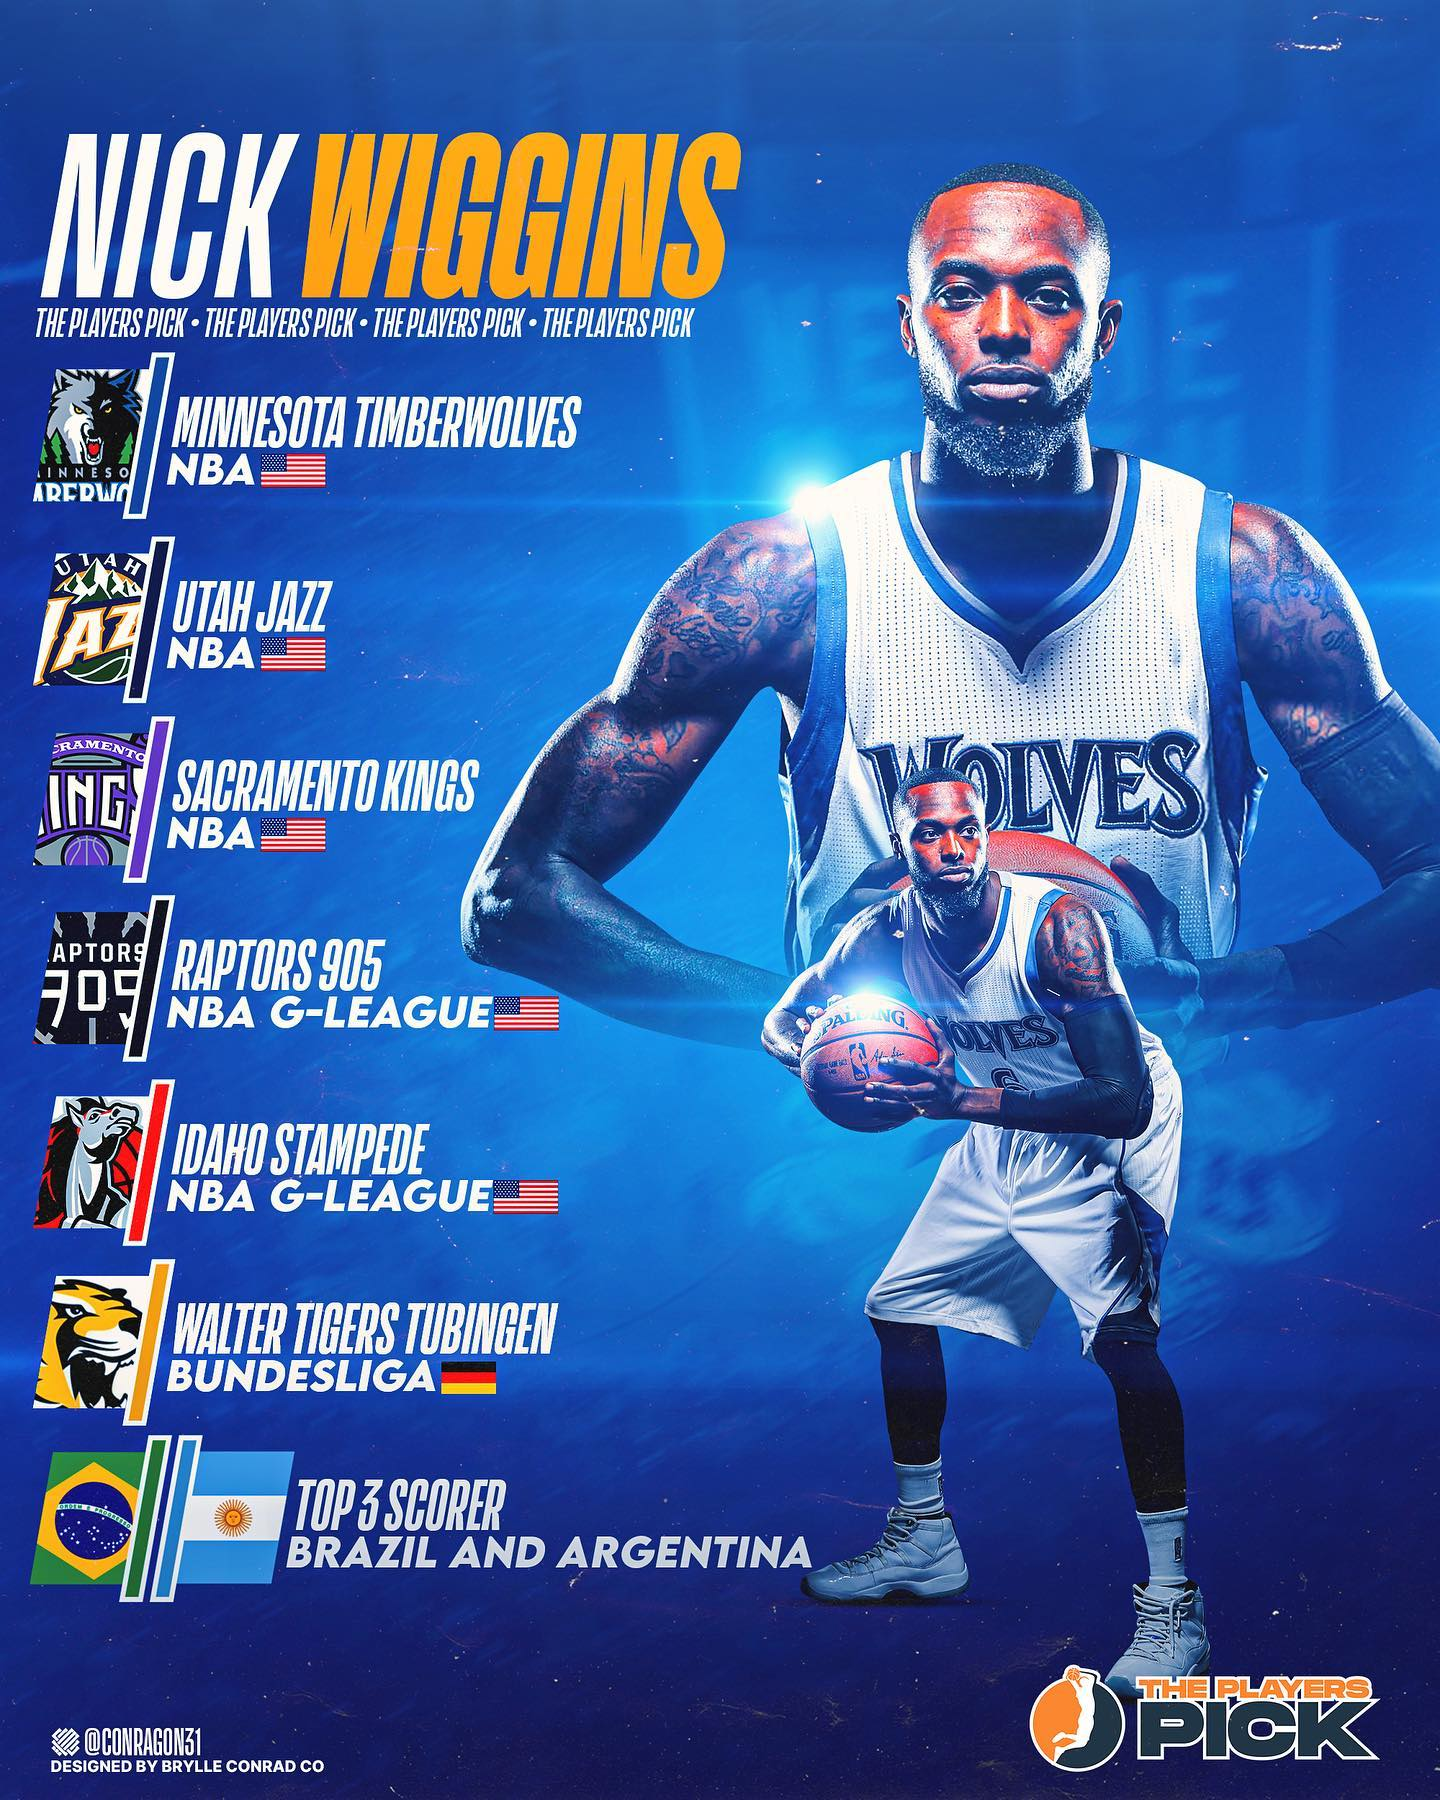 Former NBAer Nick Wiggins basketball journey